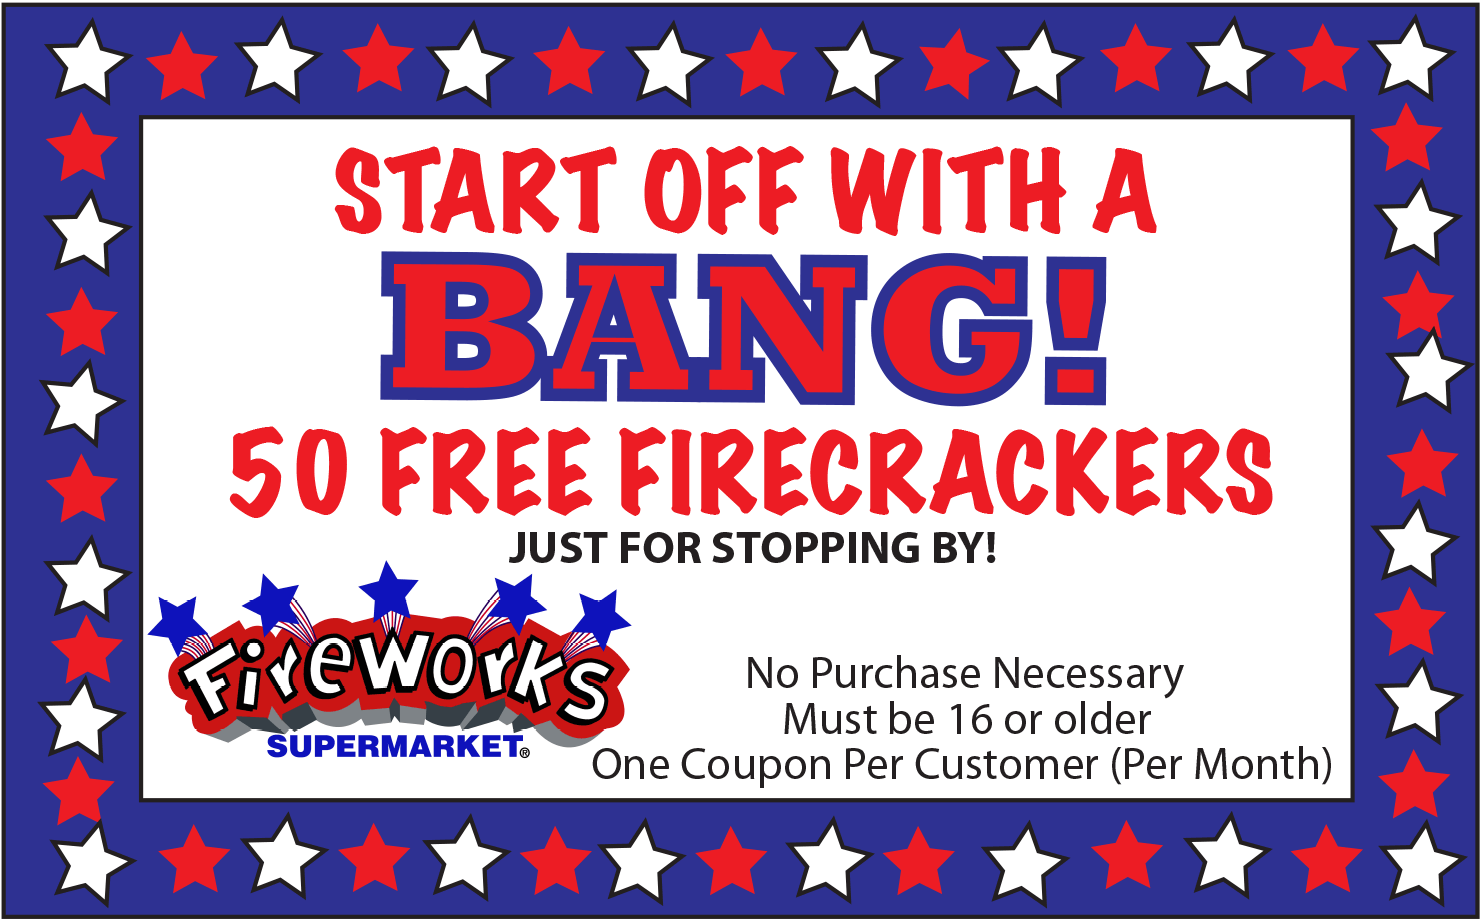 Fireworks Supermarket Coupon December 2017 50 firecrackers at Fireworks Supermarket,